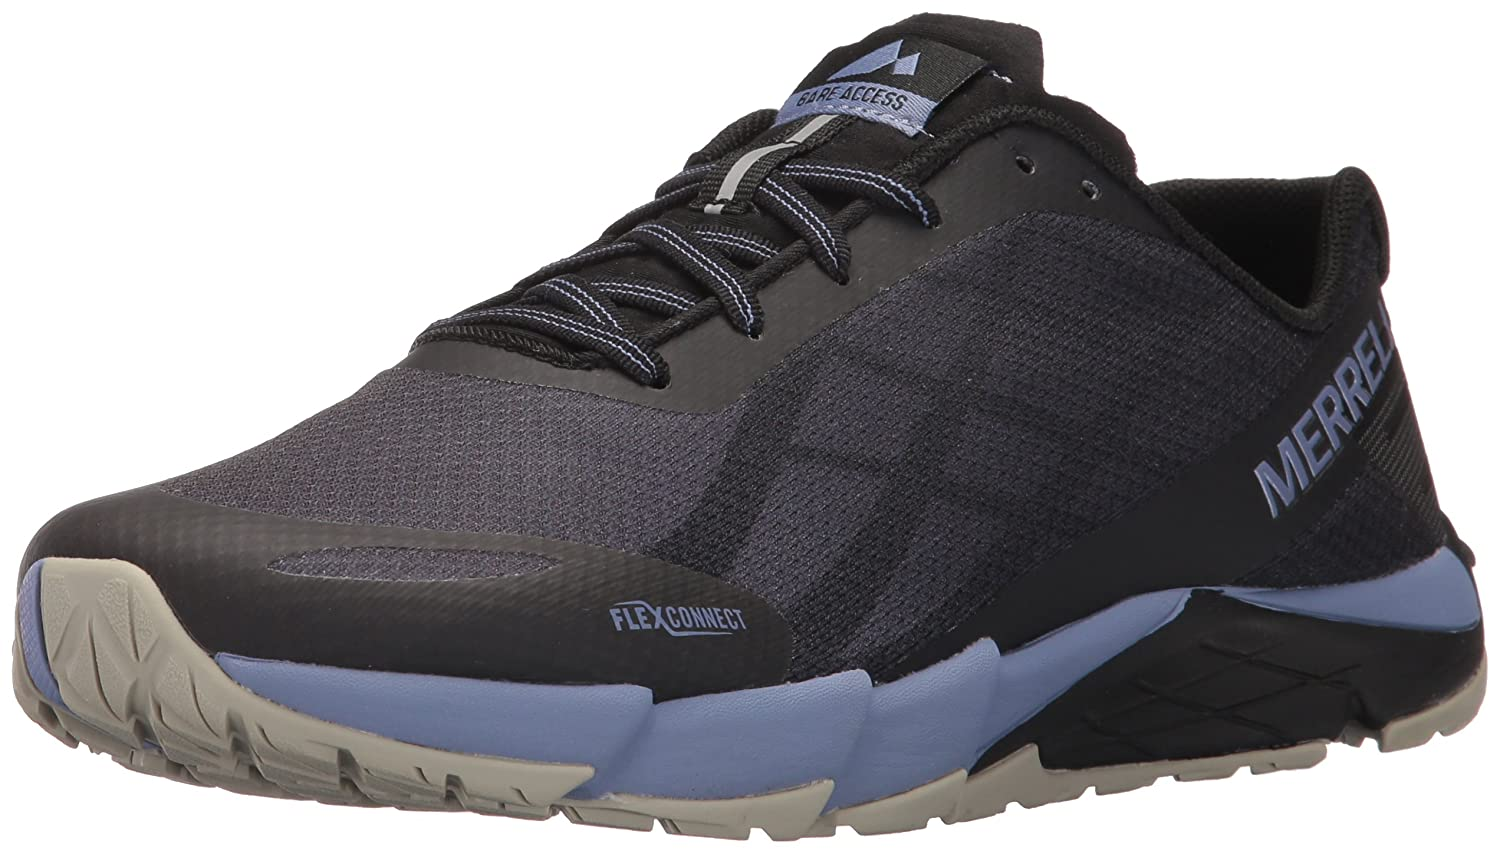 Merrell Women's Bare Access Flex Trail Runner B01MSAI96O 10 B(M) US|Black/Metallic Lilac